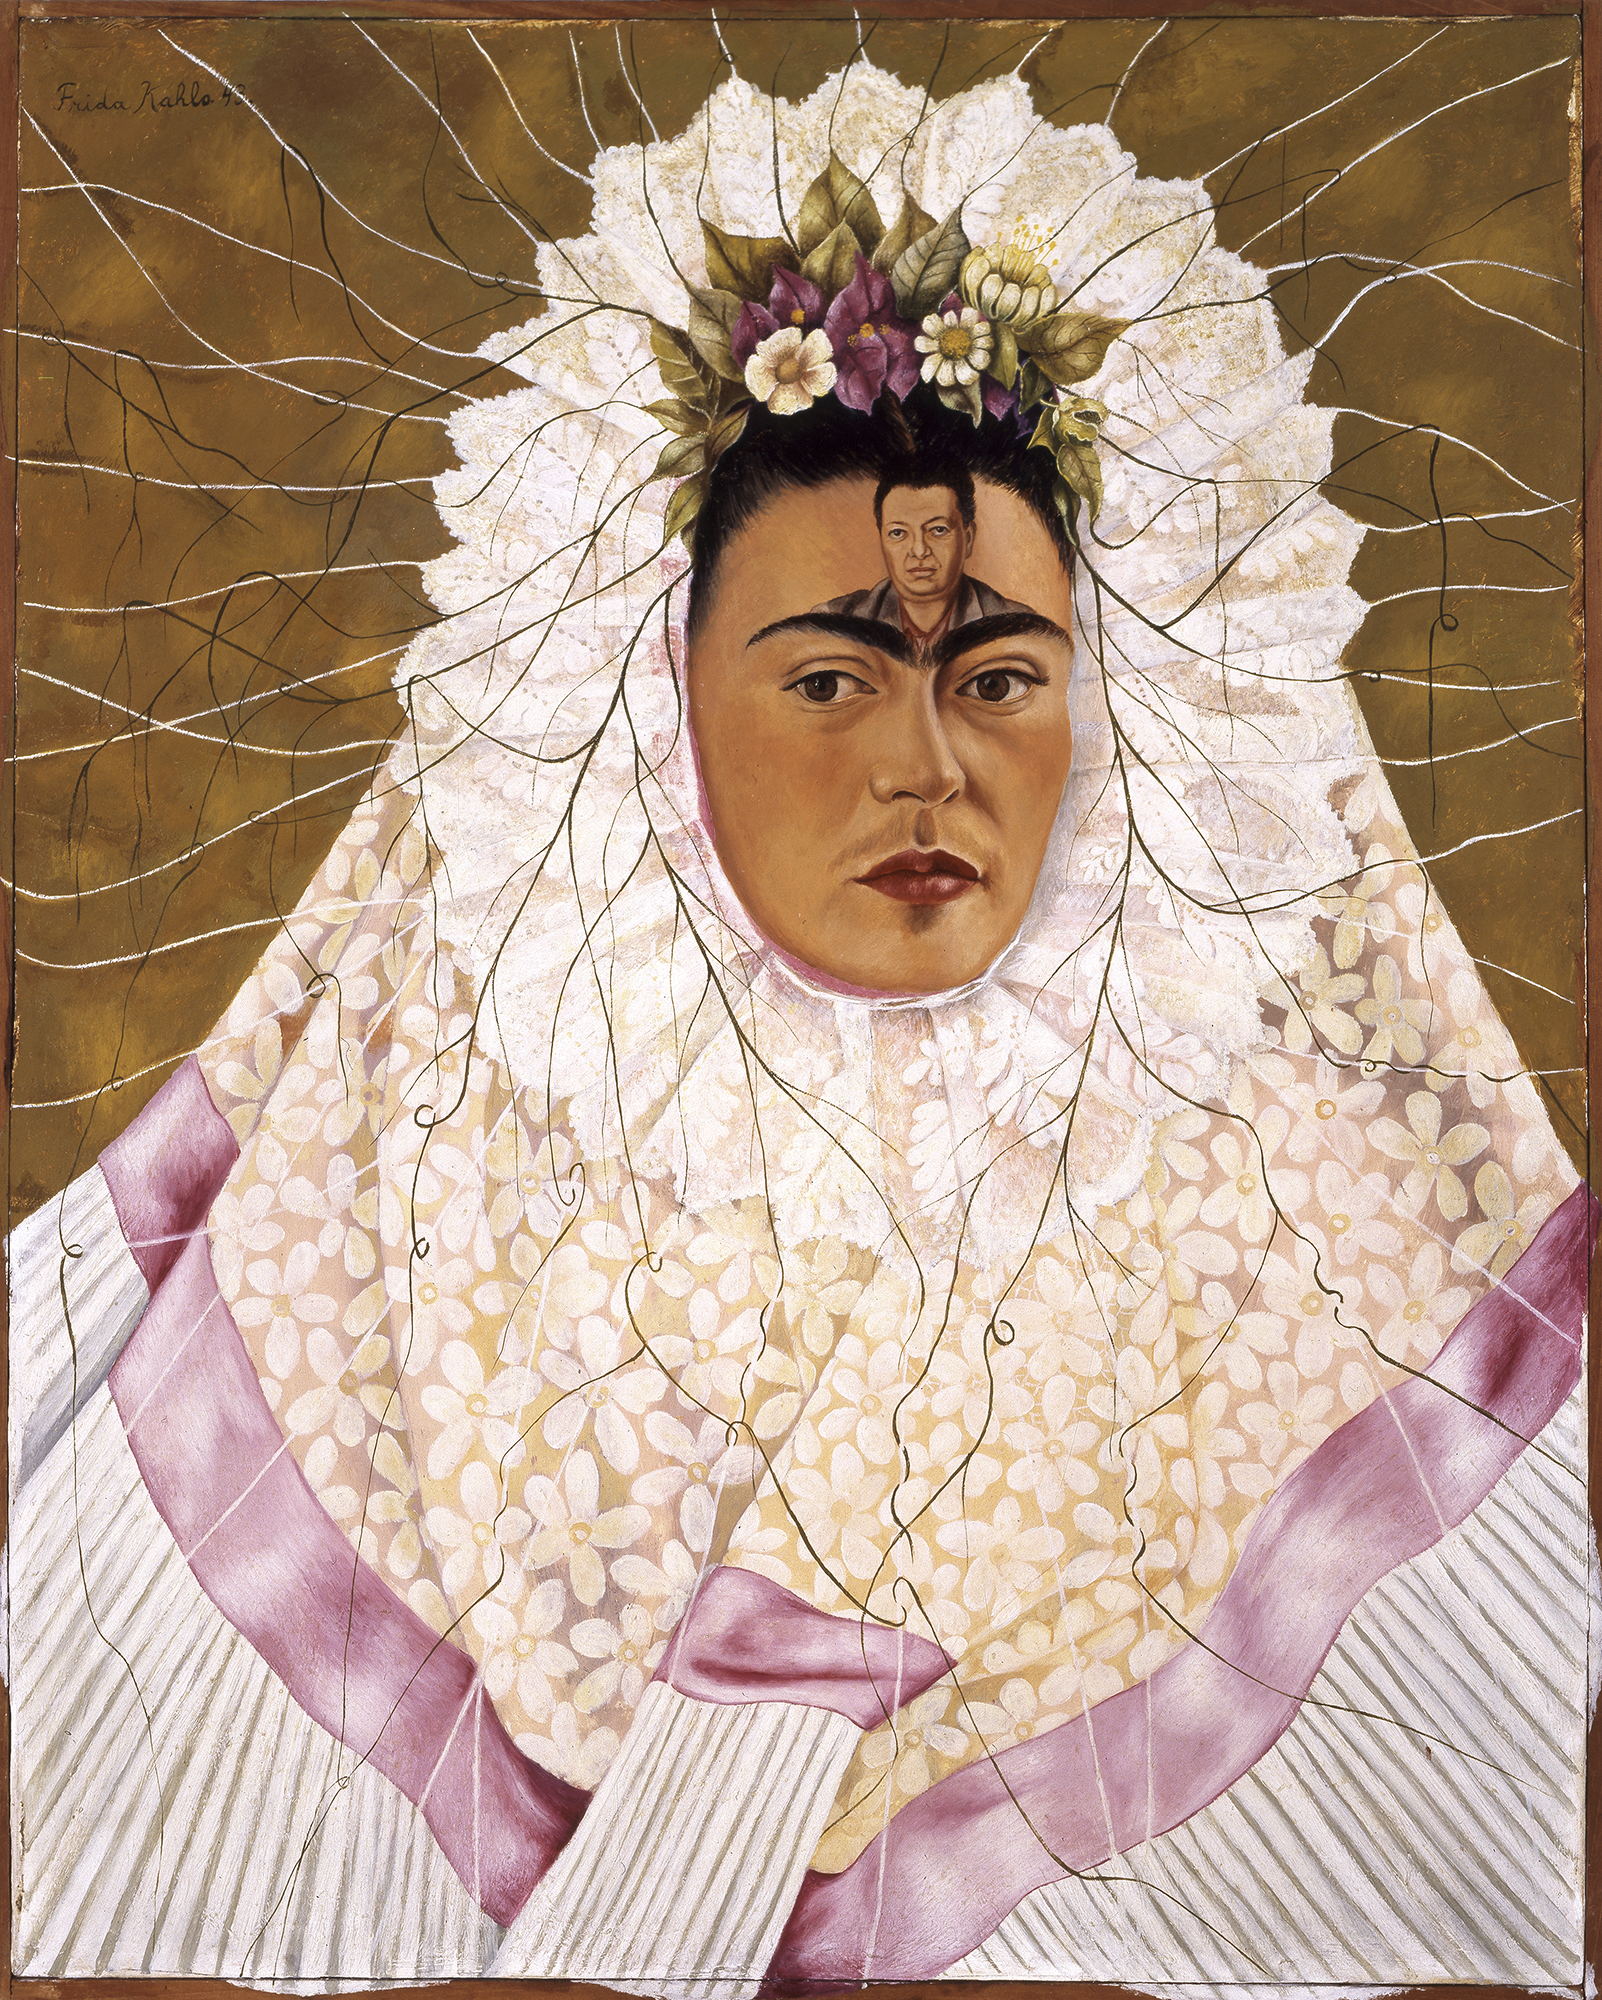 The Jacques and Natasha Gelman Collection of 20th Century Mexican Art and the Vergel Foundation. © 2019 Banco de México Diego Rivera Frida Kahlo Museums Trust, Mexico, D.F. / Artists Rights Society (ARS), New York